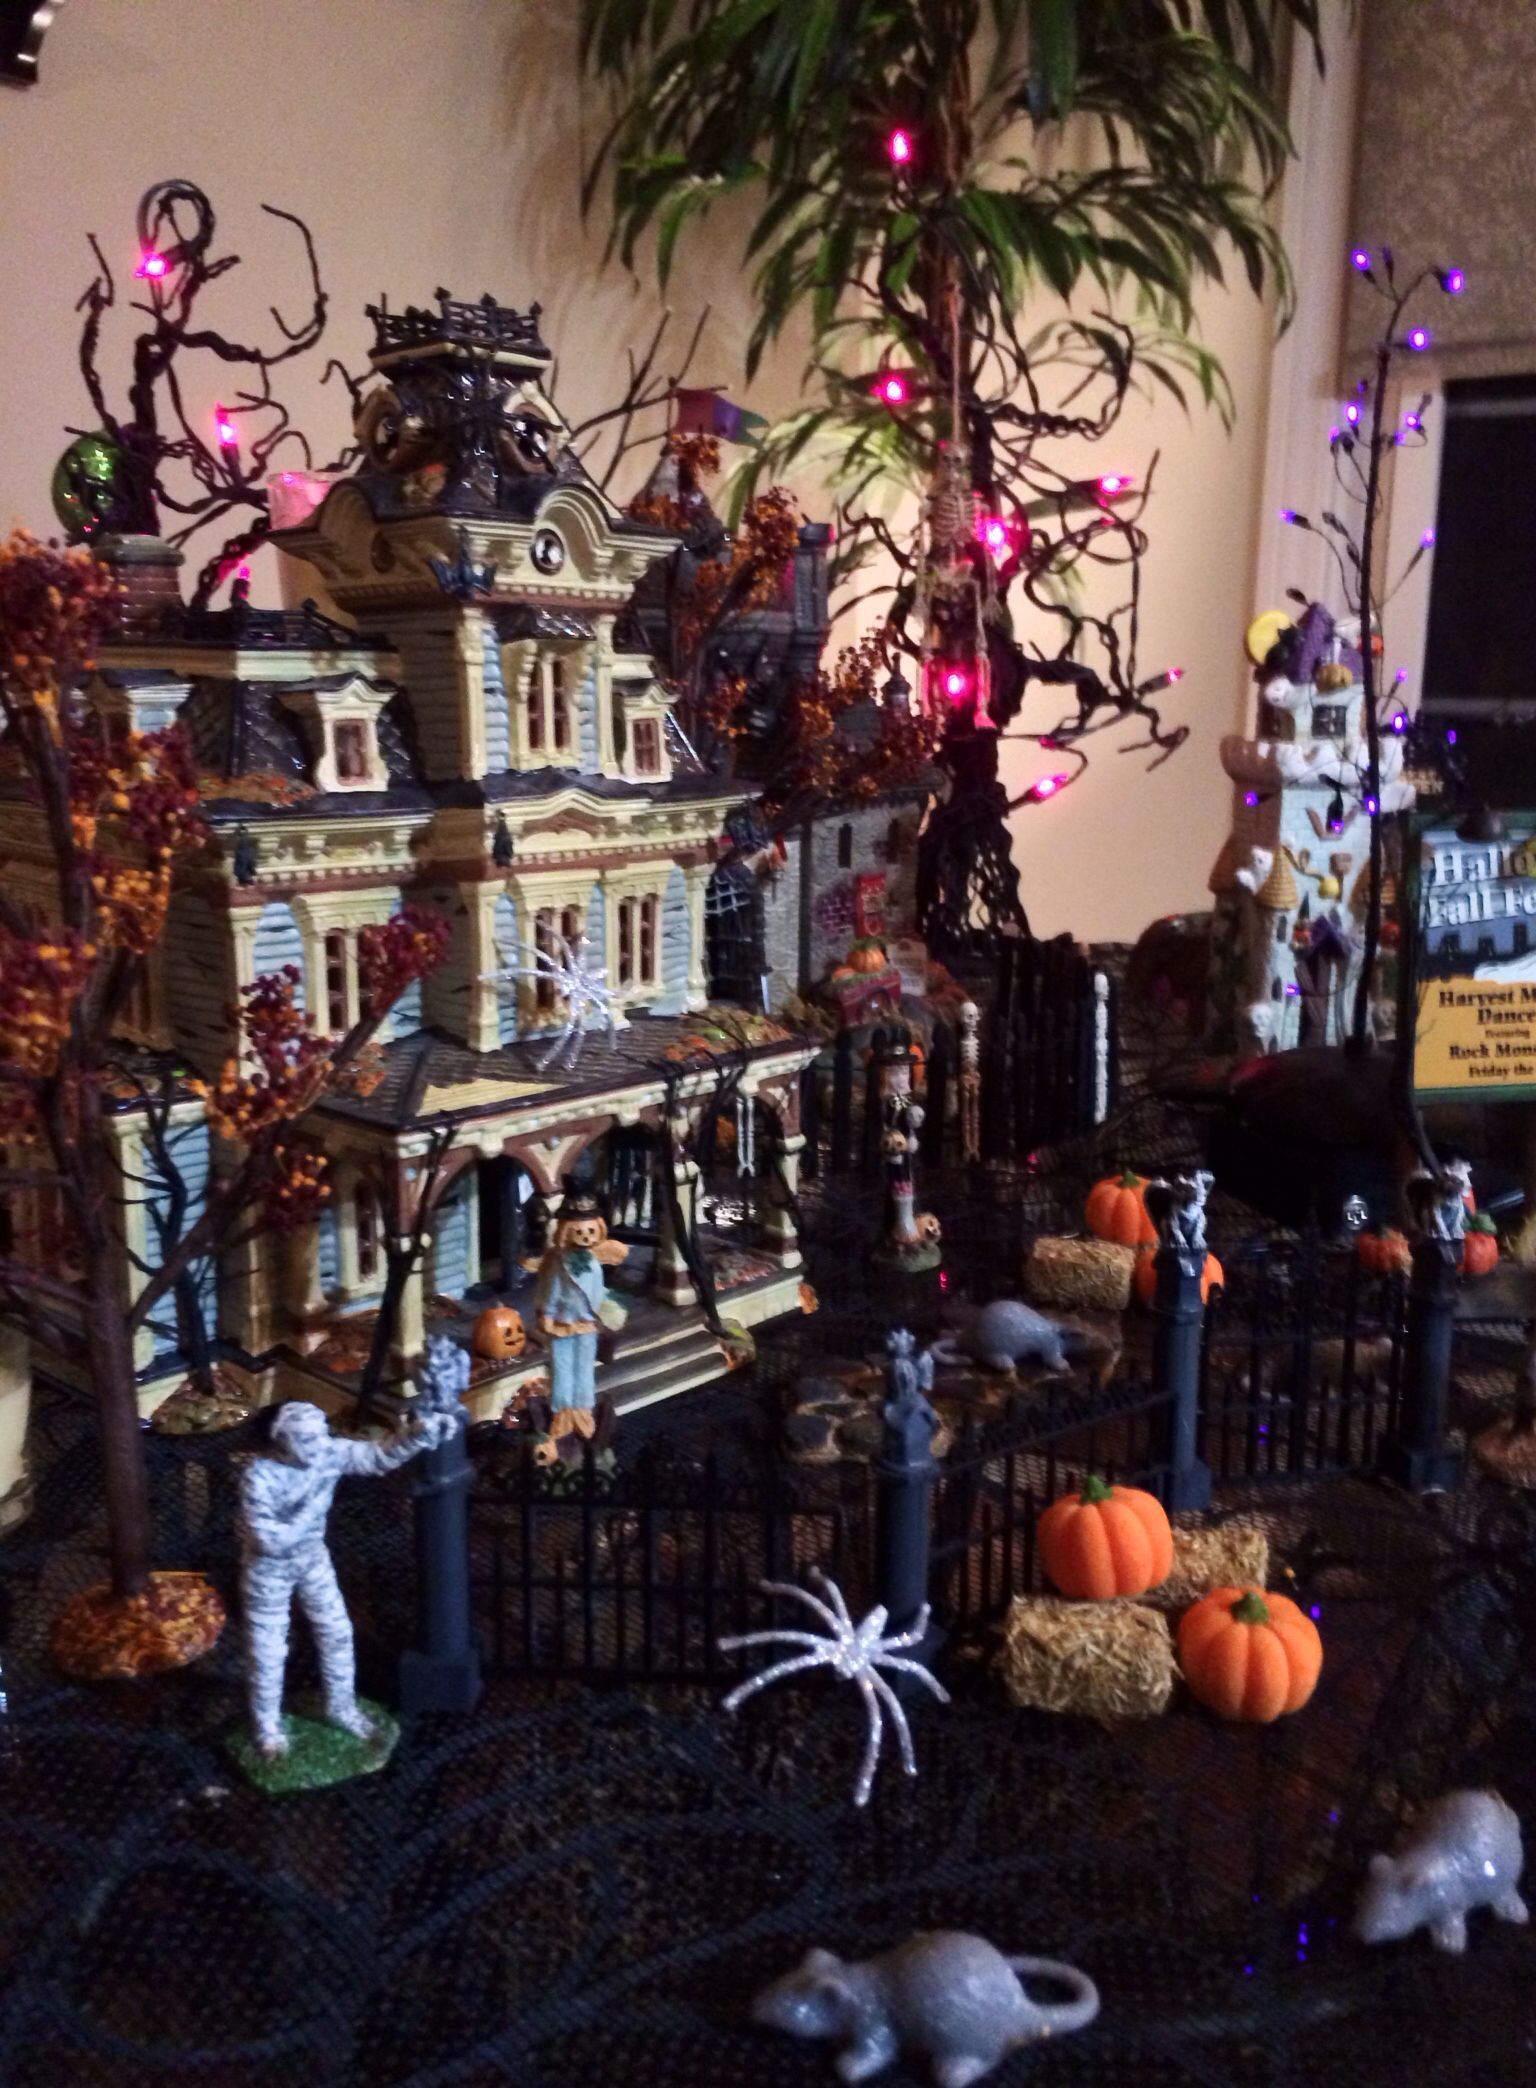 Halloween Village Display / Department 56 Halloween / Lemax Spooky Town / Village #halloweenvillagedisplay Halloween Village Display / Department 56 Halloween / Lemax Spooky Town / Village #halloweenvillagedisplay Halloween Village Display / Department 56 Halloween / Lemax Spooky Town / Village #halloweenvillagedisplay Halloween Village Display / Department 56 Halloween / Lemax Spooky Town / Village #halloweenvillagedisplay